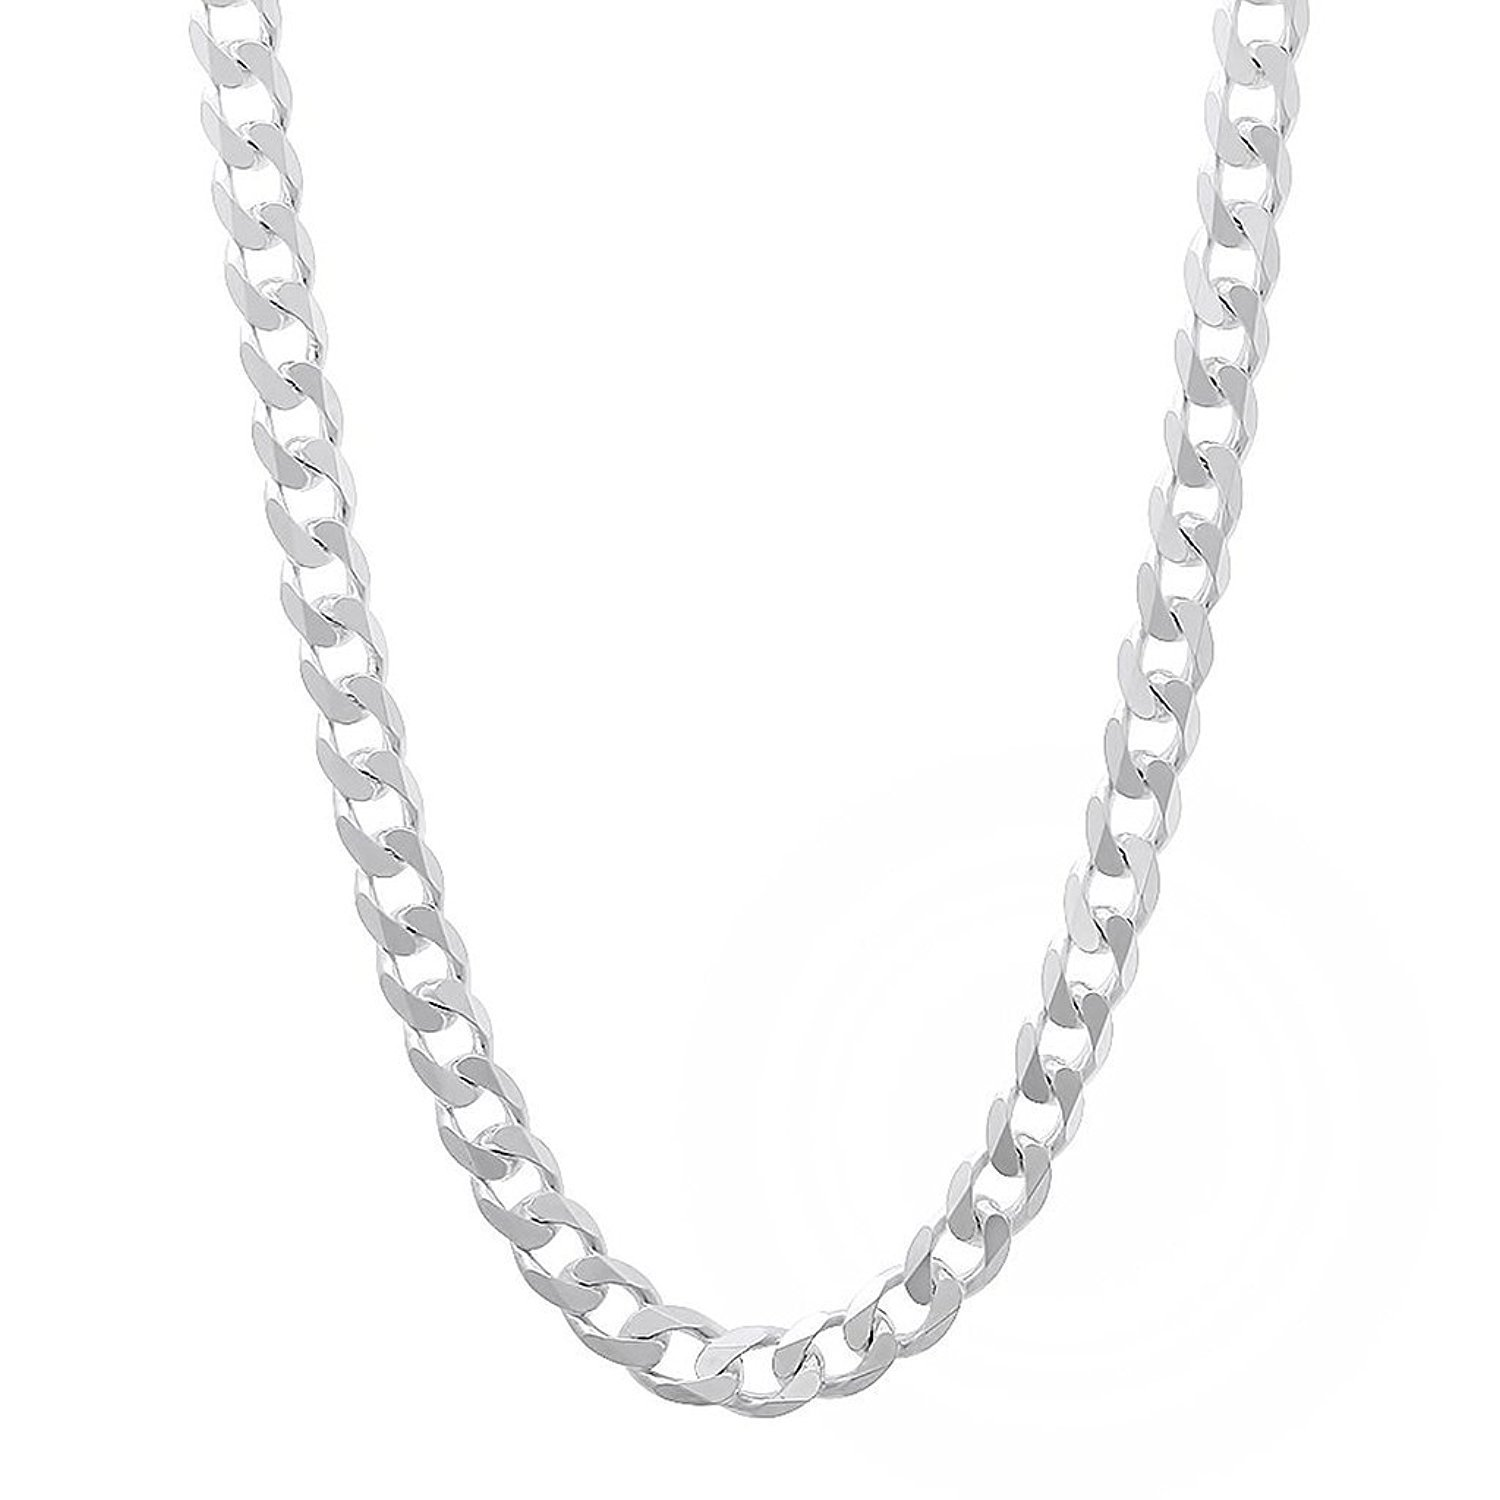 Italian Sterling Silver Curb Chain - 3.5mm - 26'' Necklace